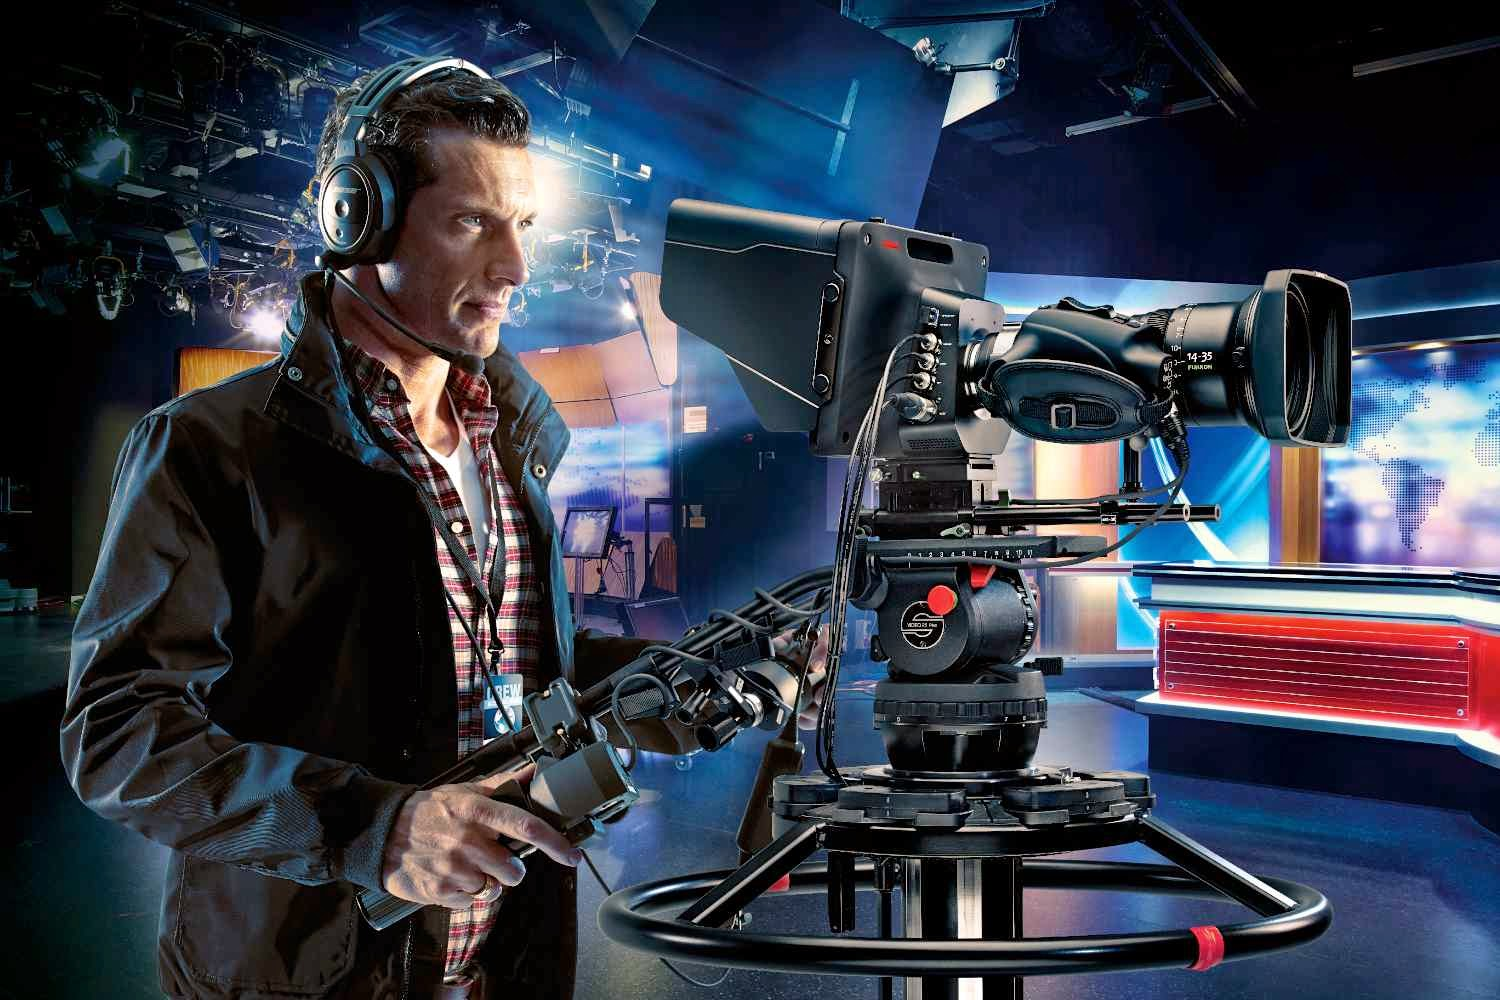 Urbanfox tv blog tiny blackmagic studio camera - Tv in camera ...